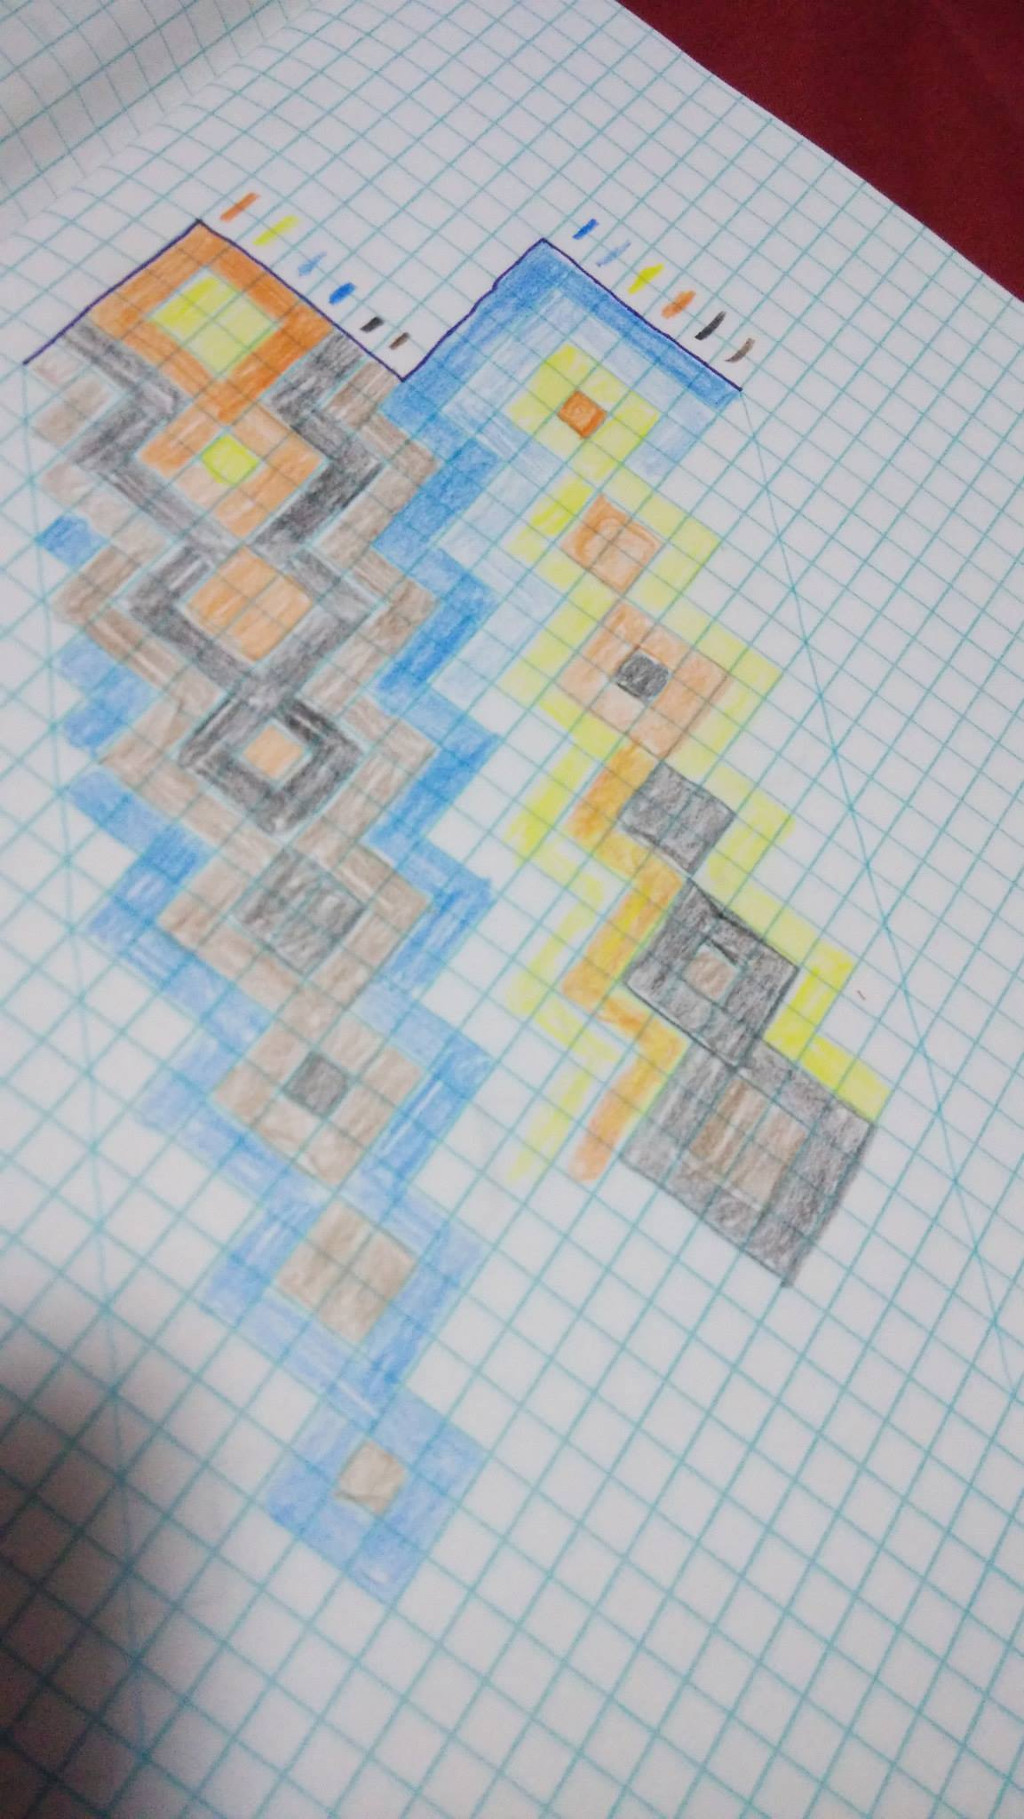 its not always so easy if youre dealing with a new pattern or trying to make up a new one back in the day i made a bracelet specific graph paper that